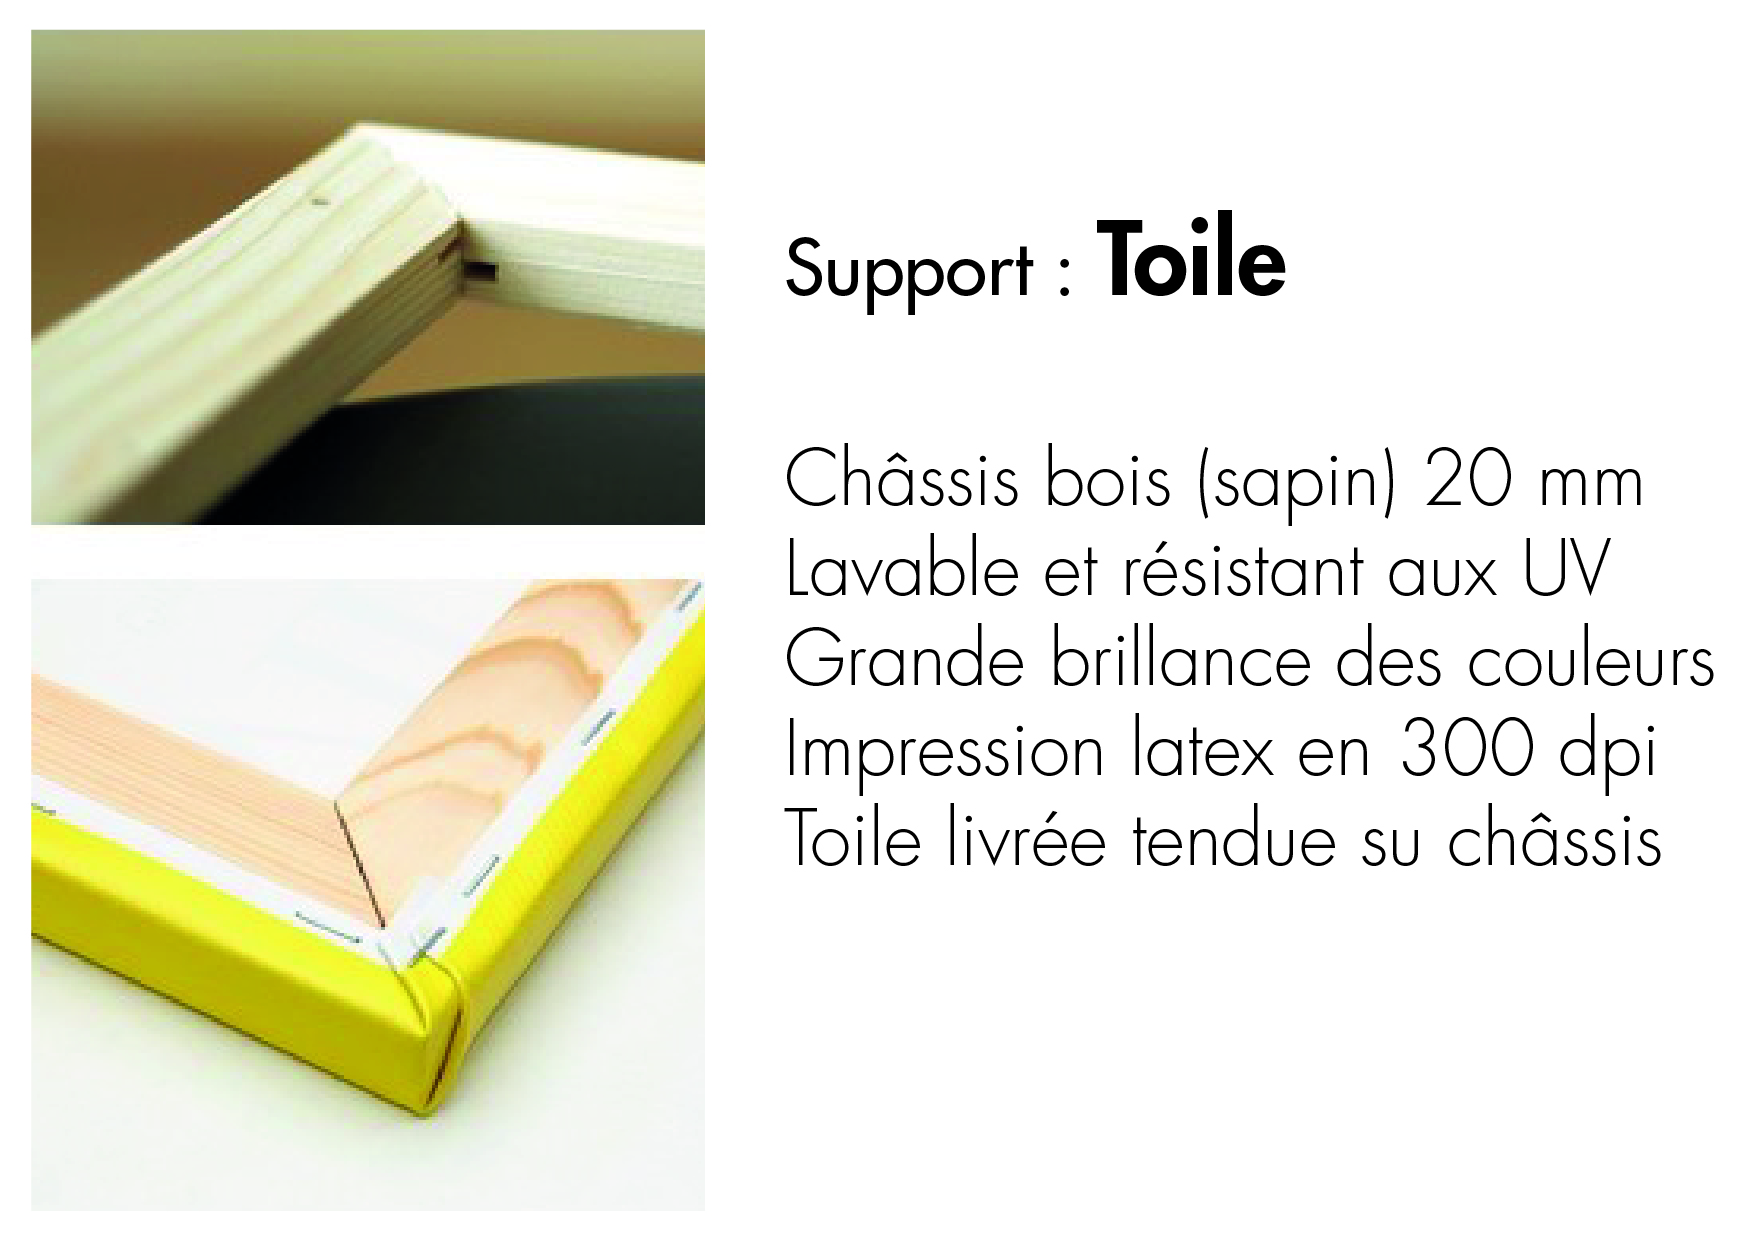 support toile